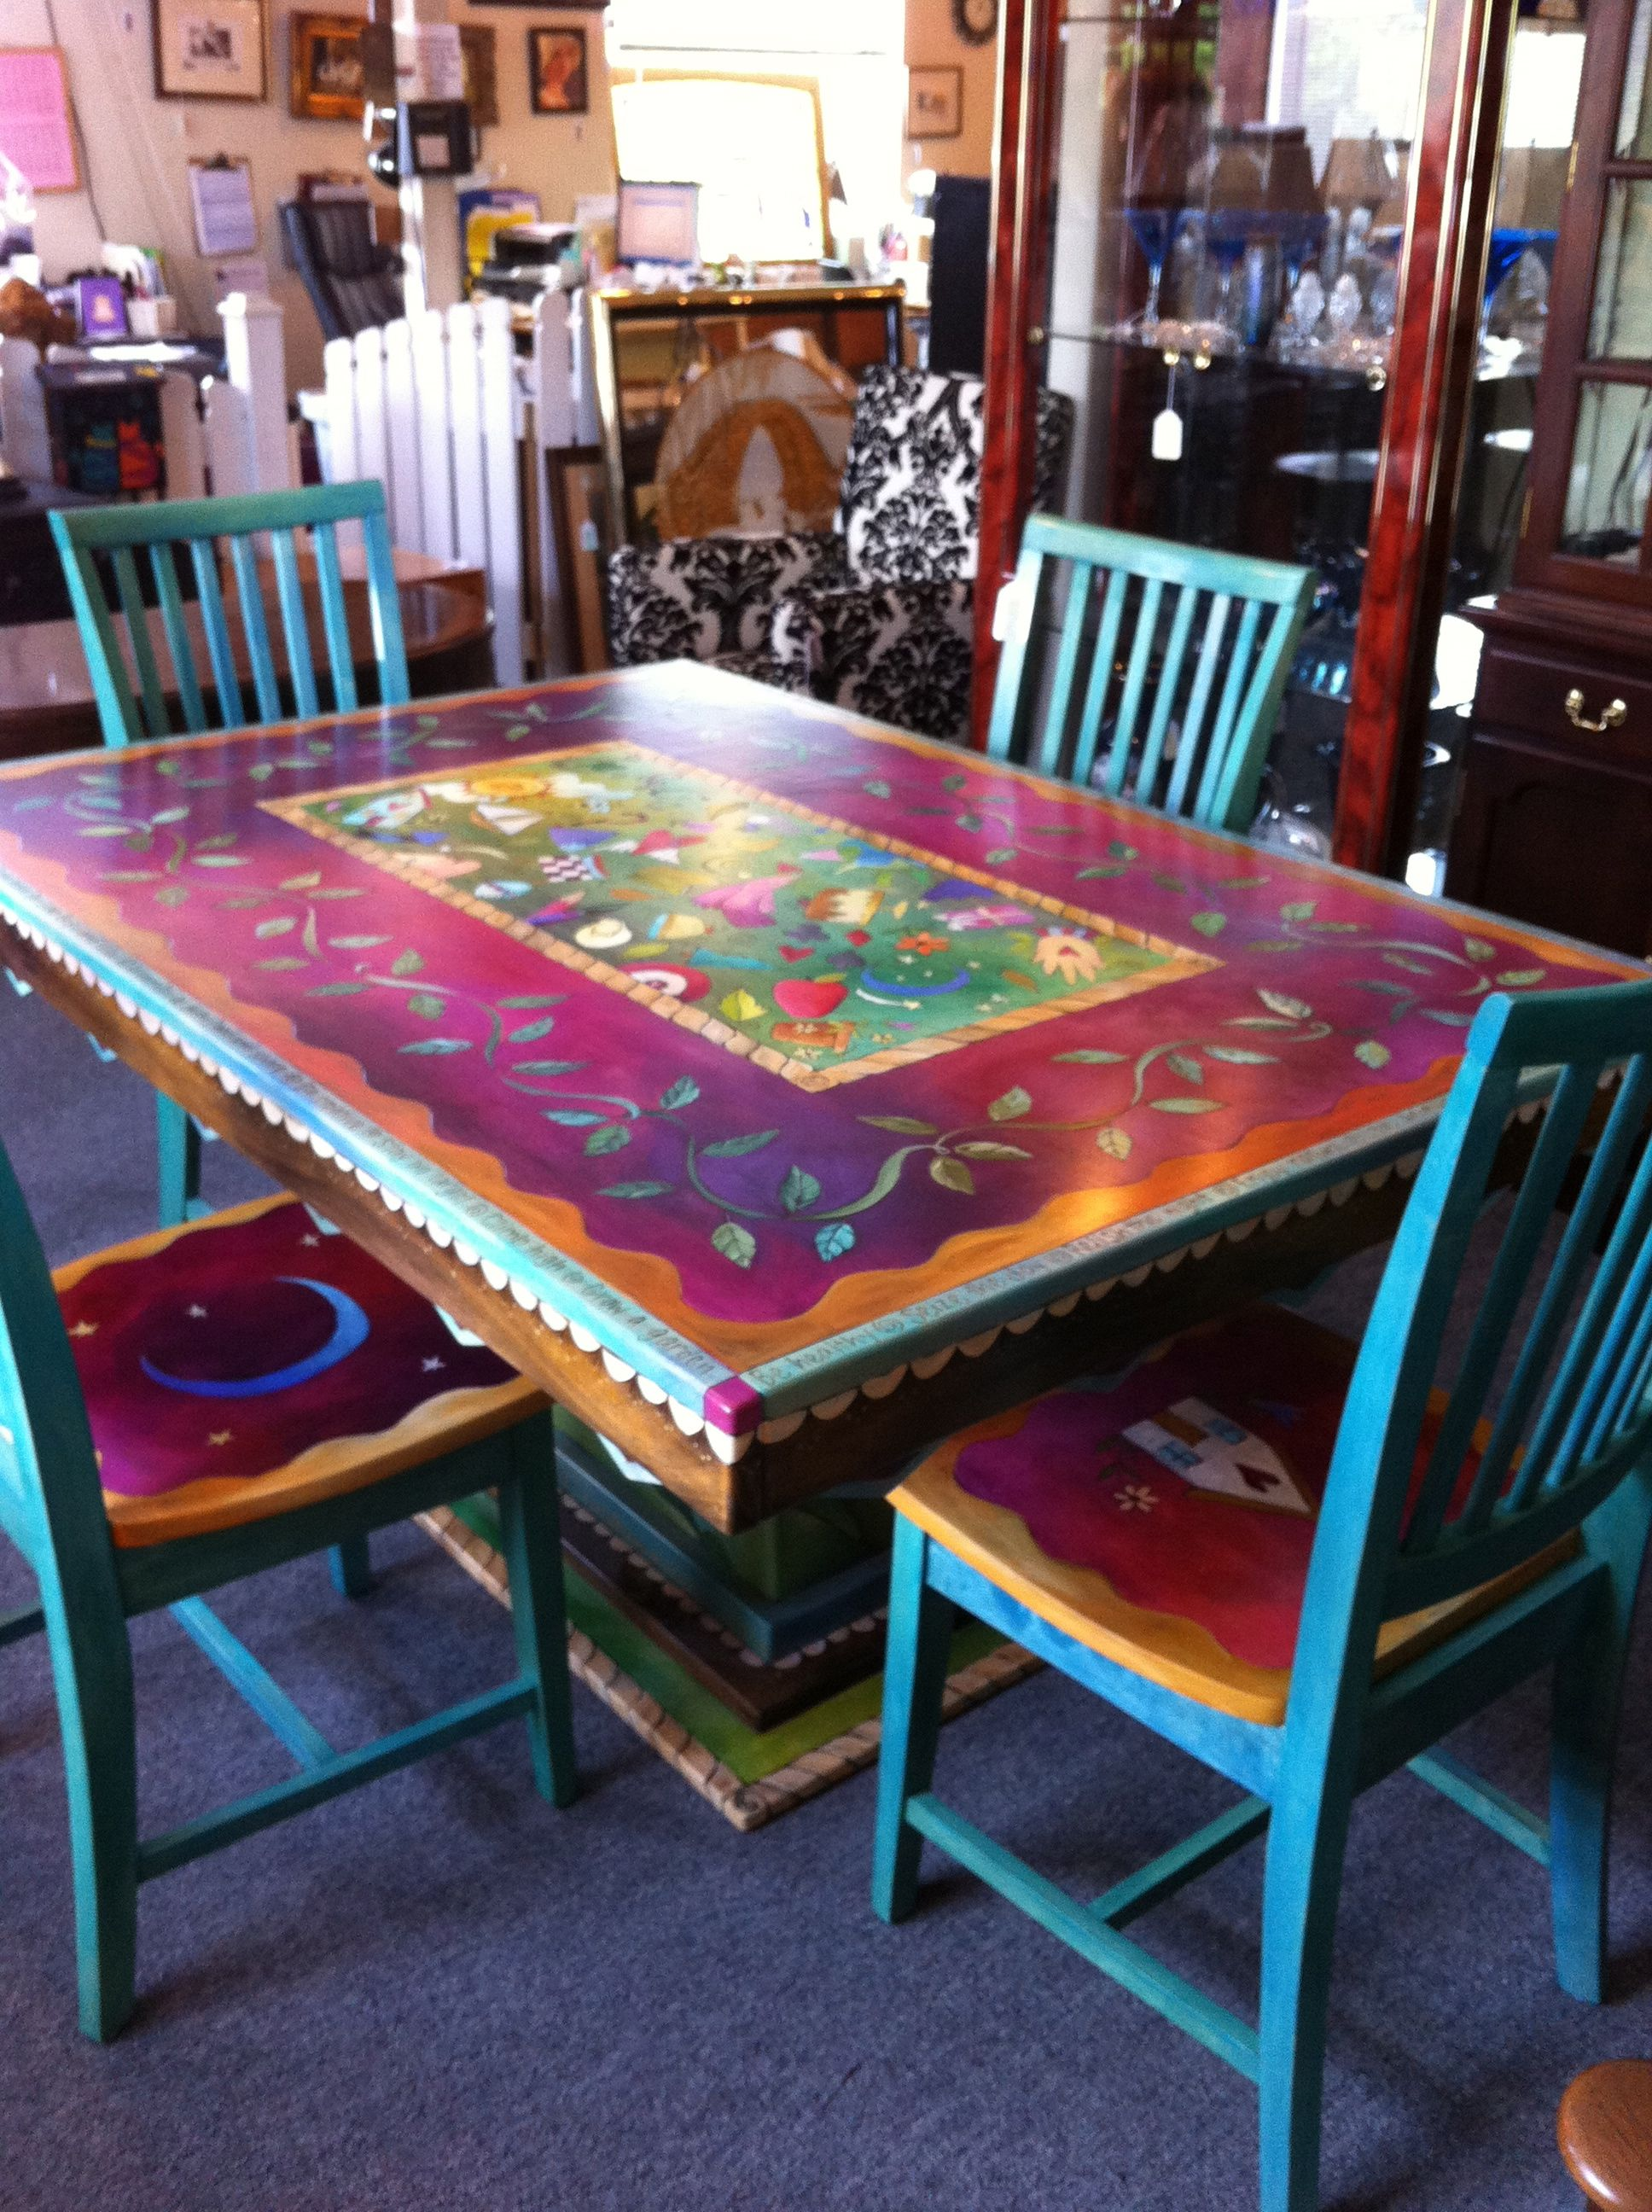 Painted Tables And Chairs Nursery Recliner Chair Australia Gorgeous Hand Table Now I Can 39t Decide